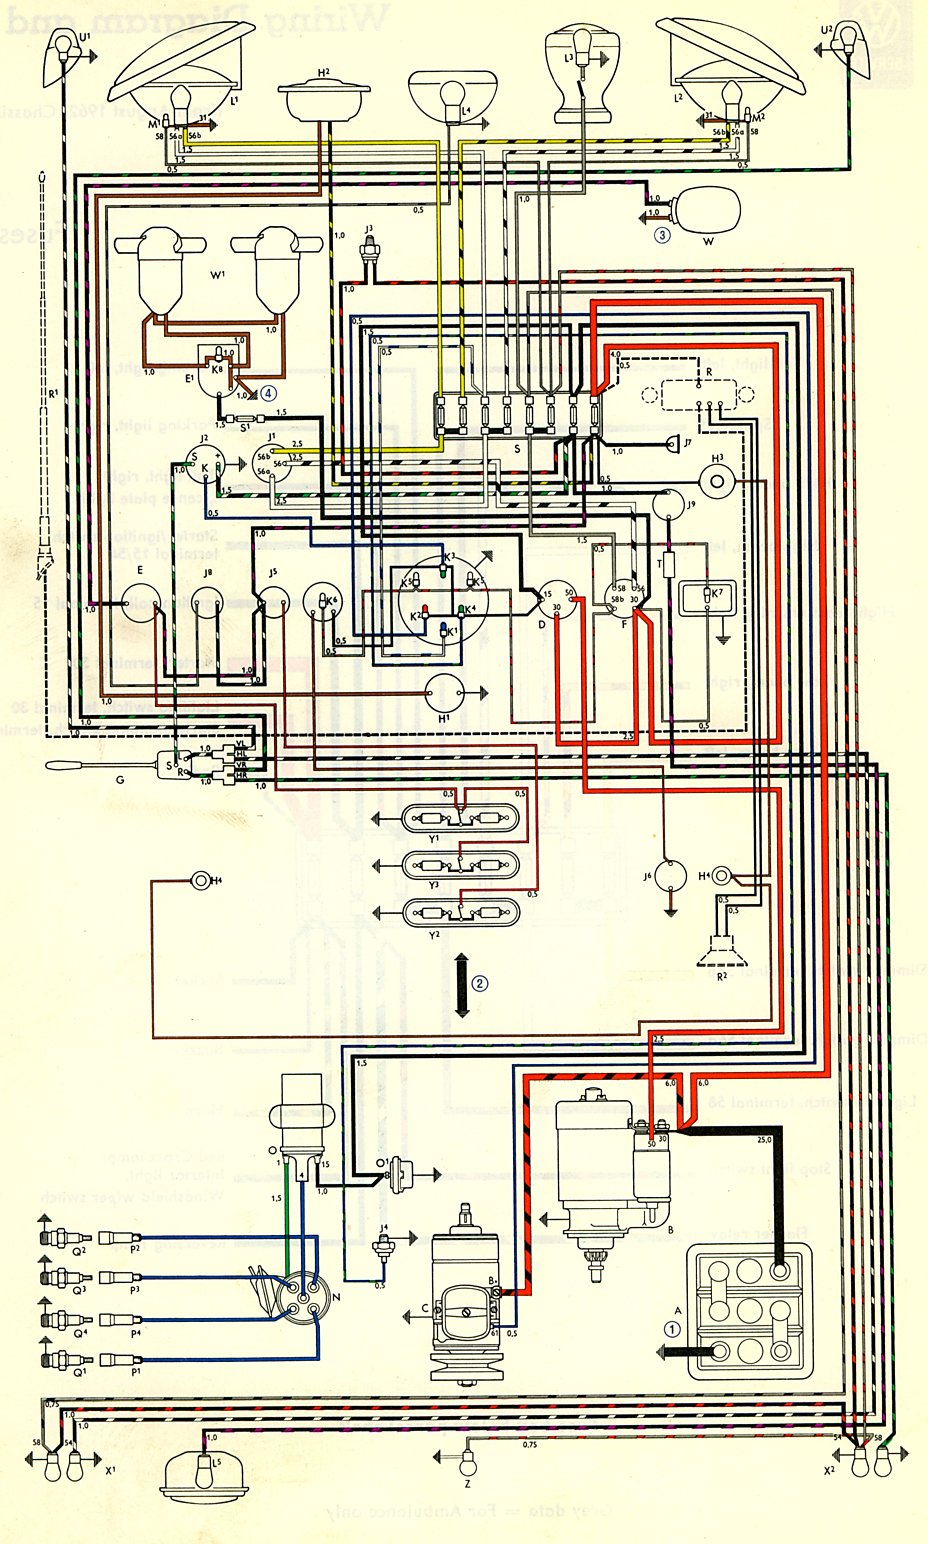 Vw Bus Wiring Diagram:  TheGoldenBug.com,Design